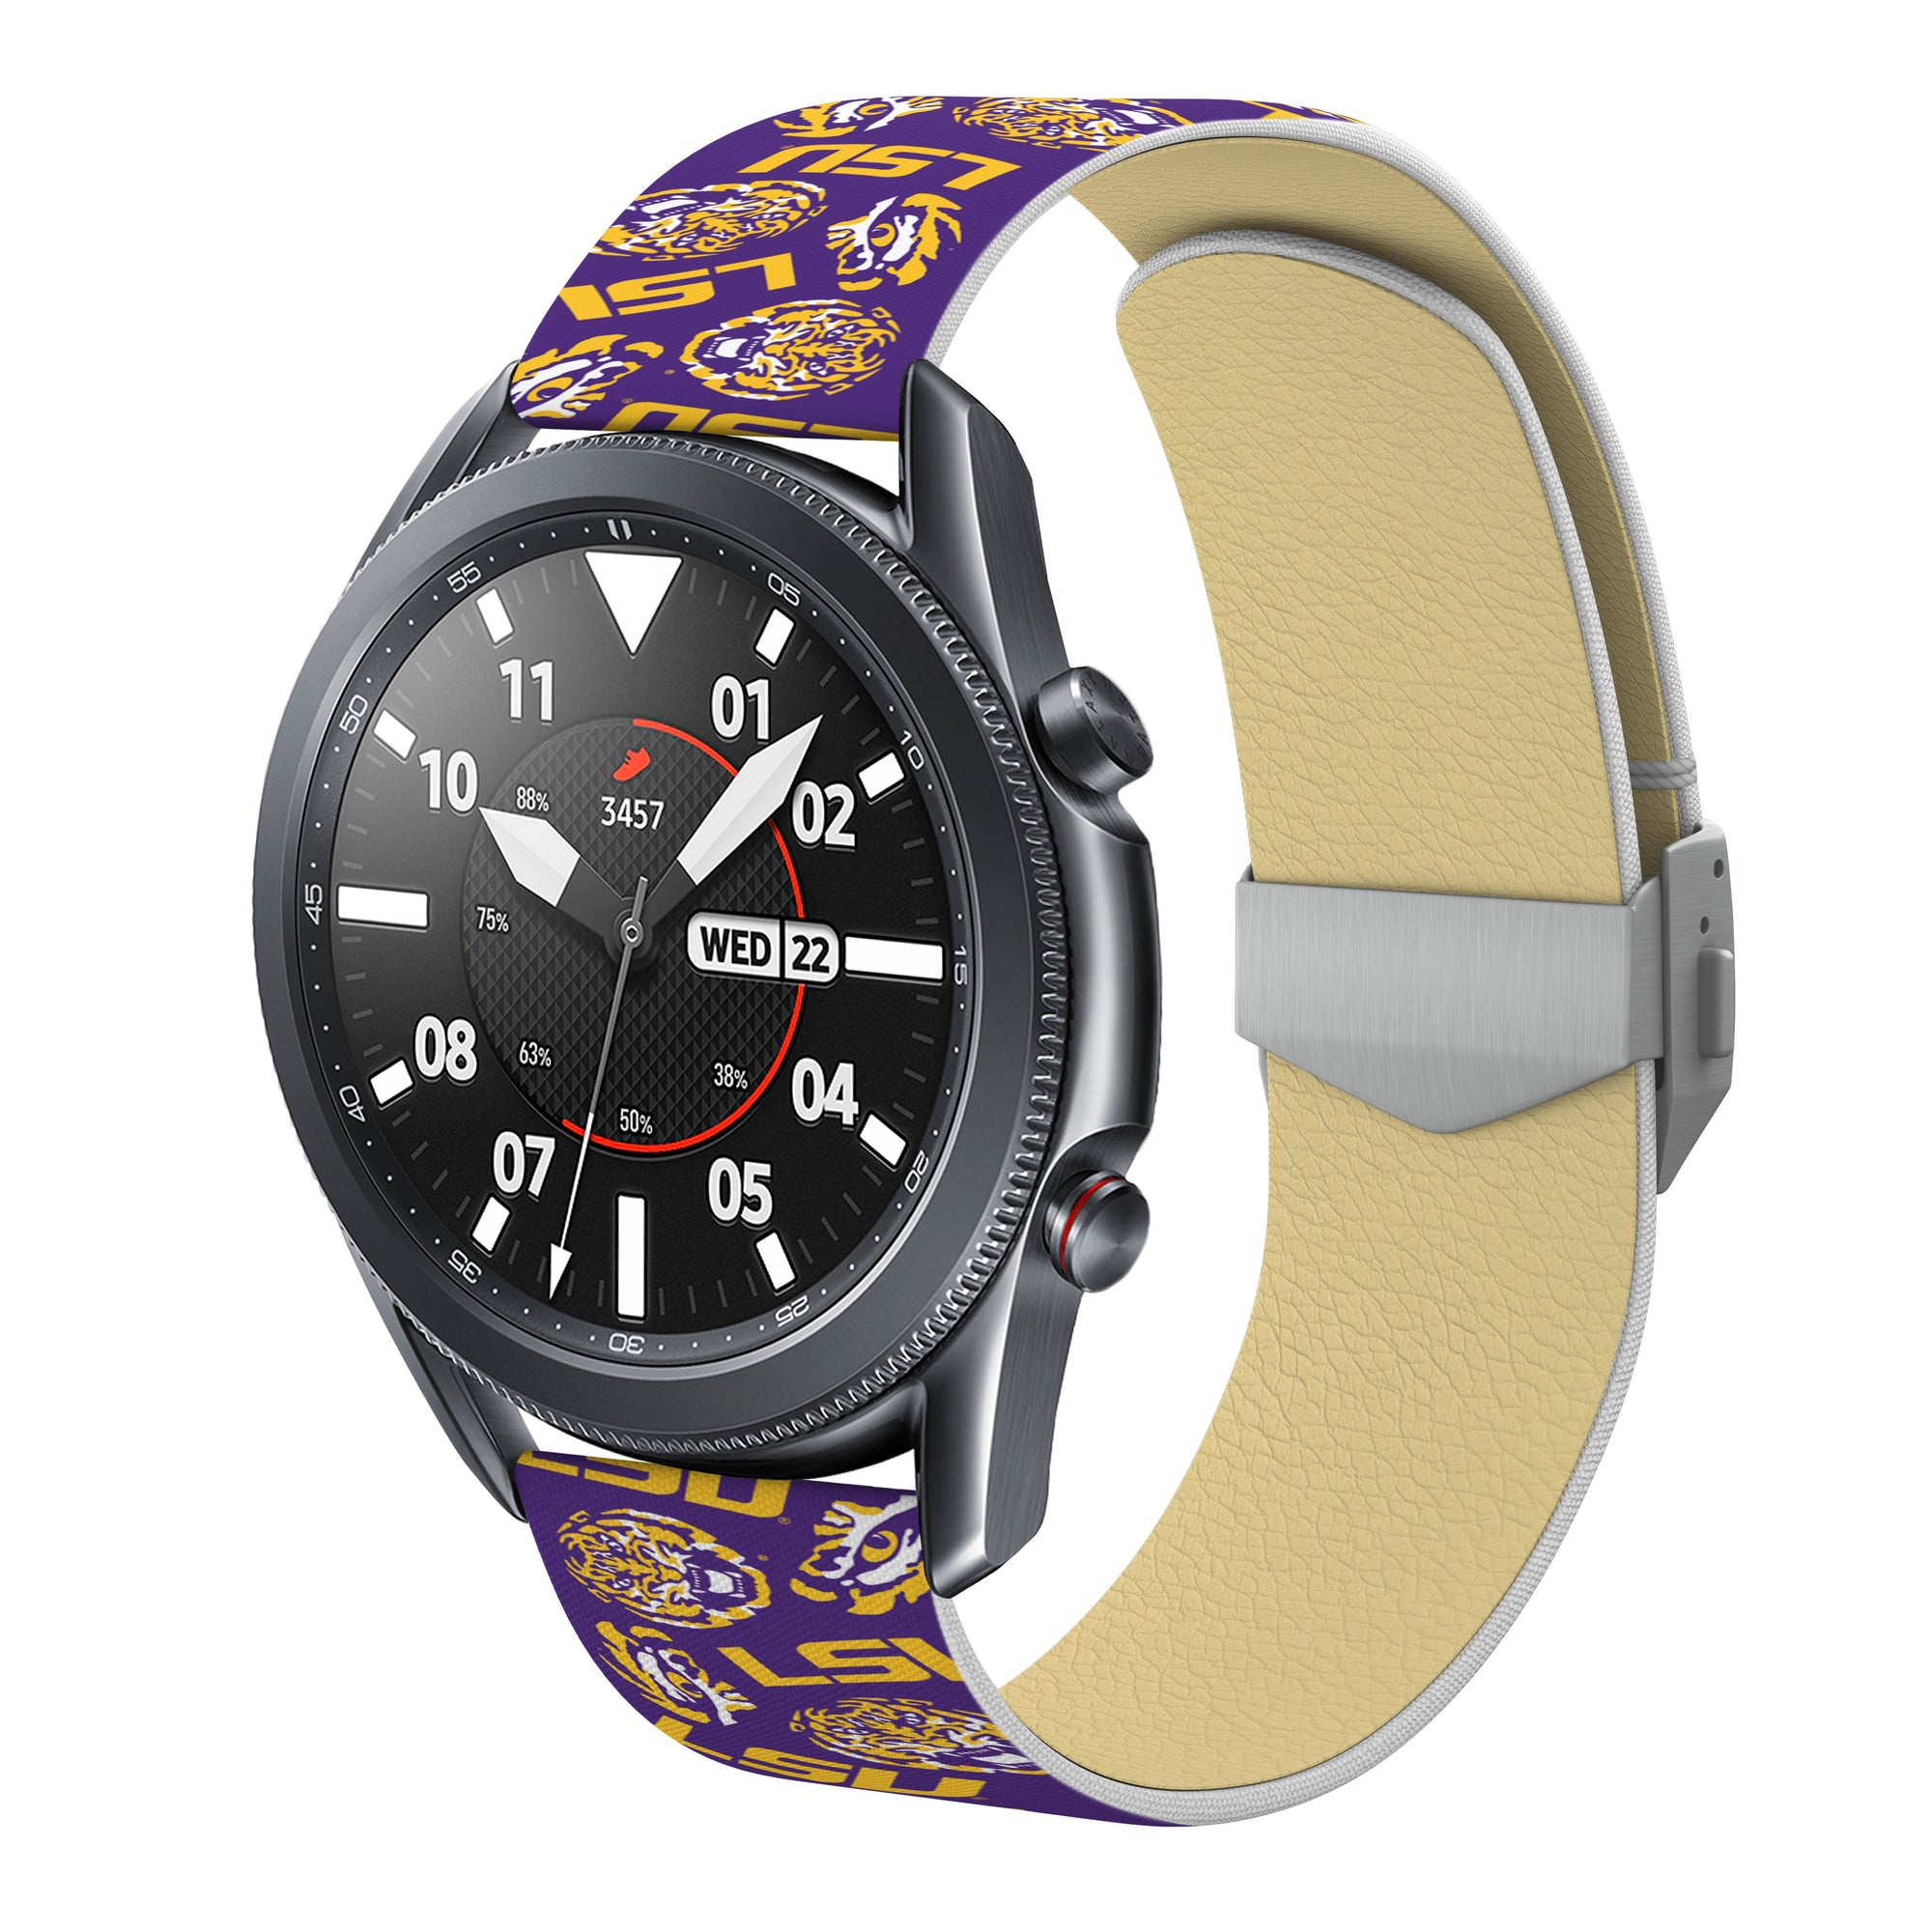 Louisiana State Tigers Full Print Quick Change Watch Band With Engraved Buckle - AffinityBands